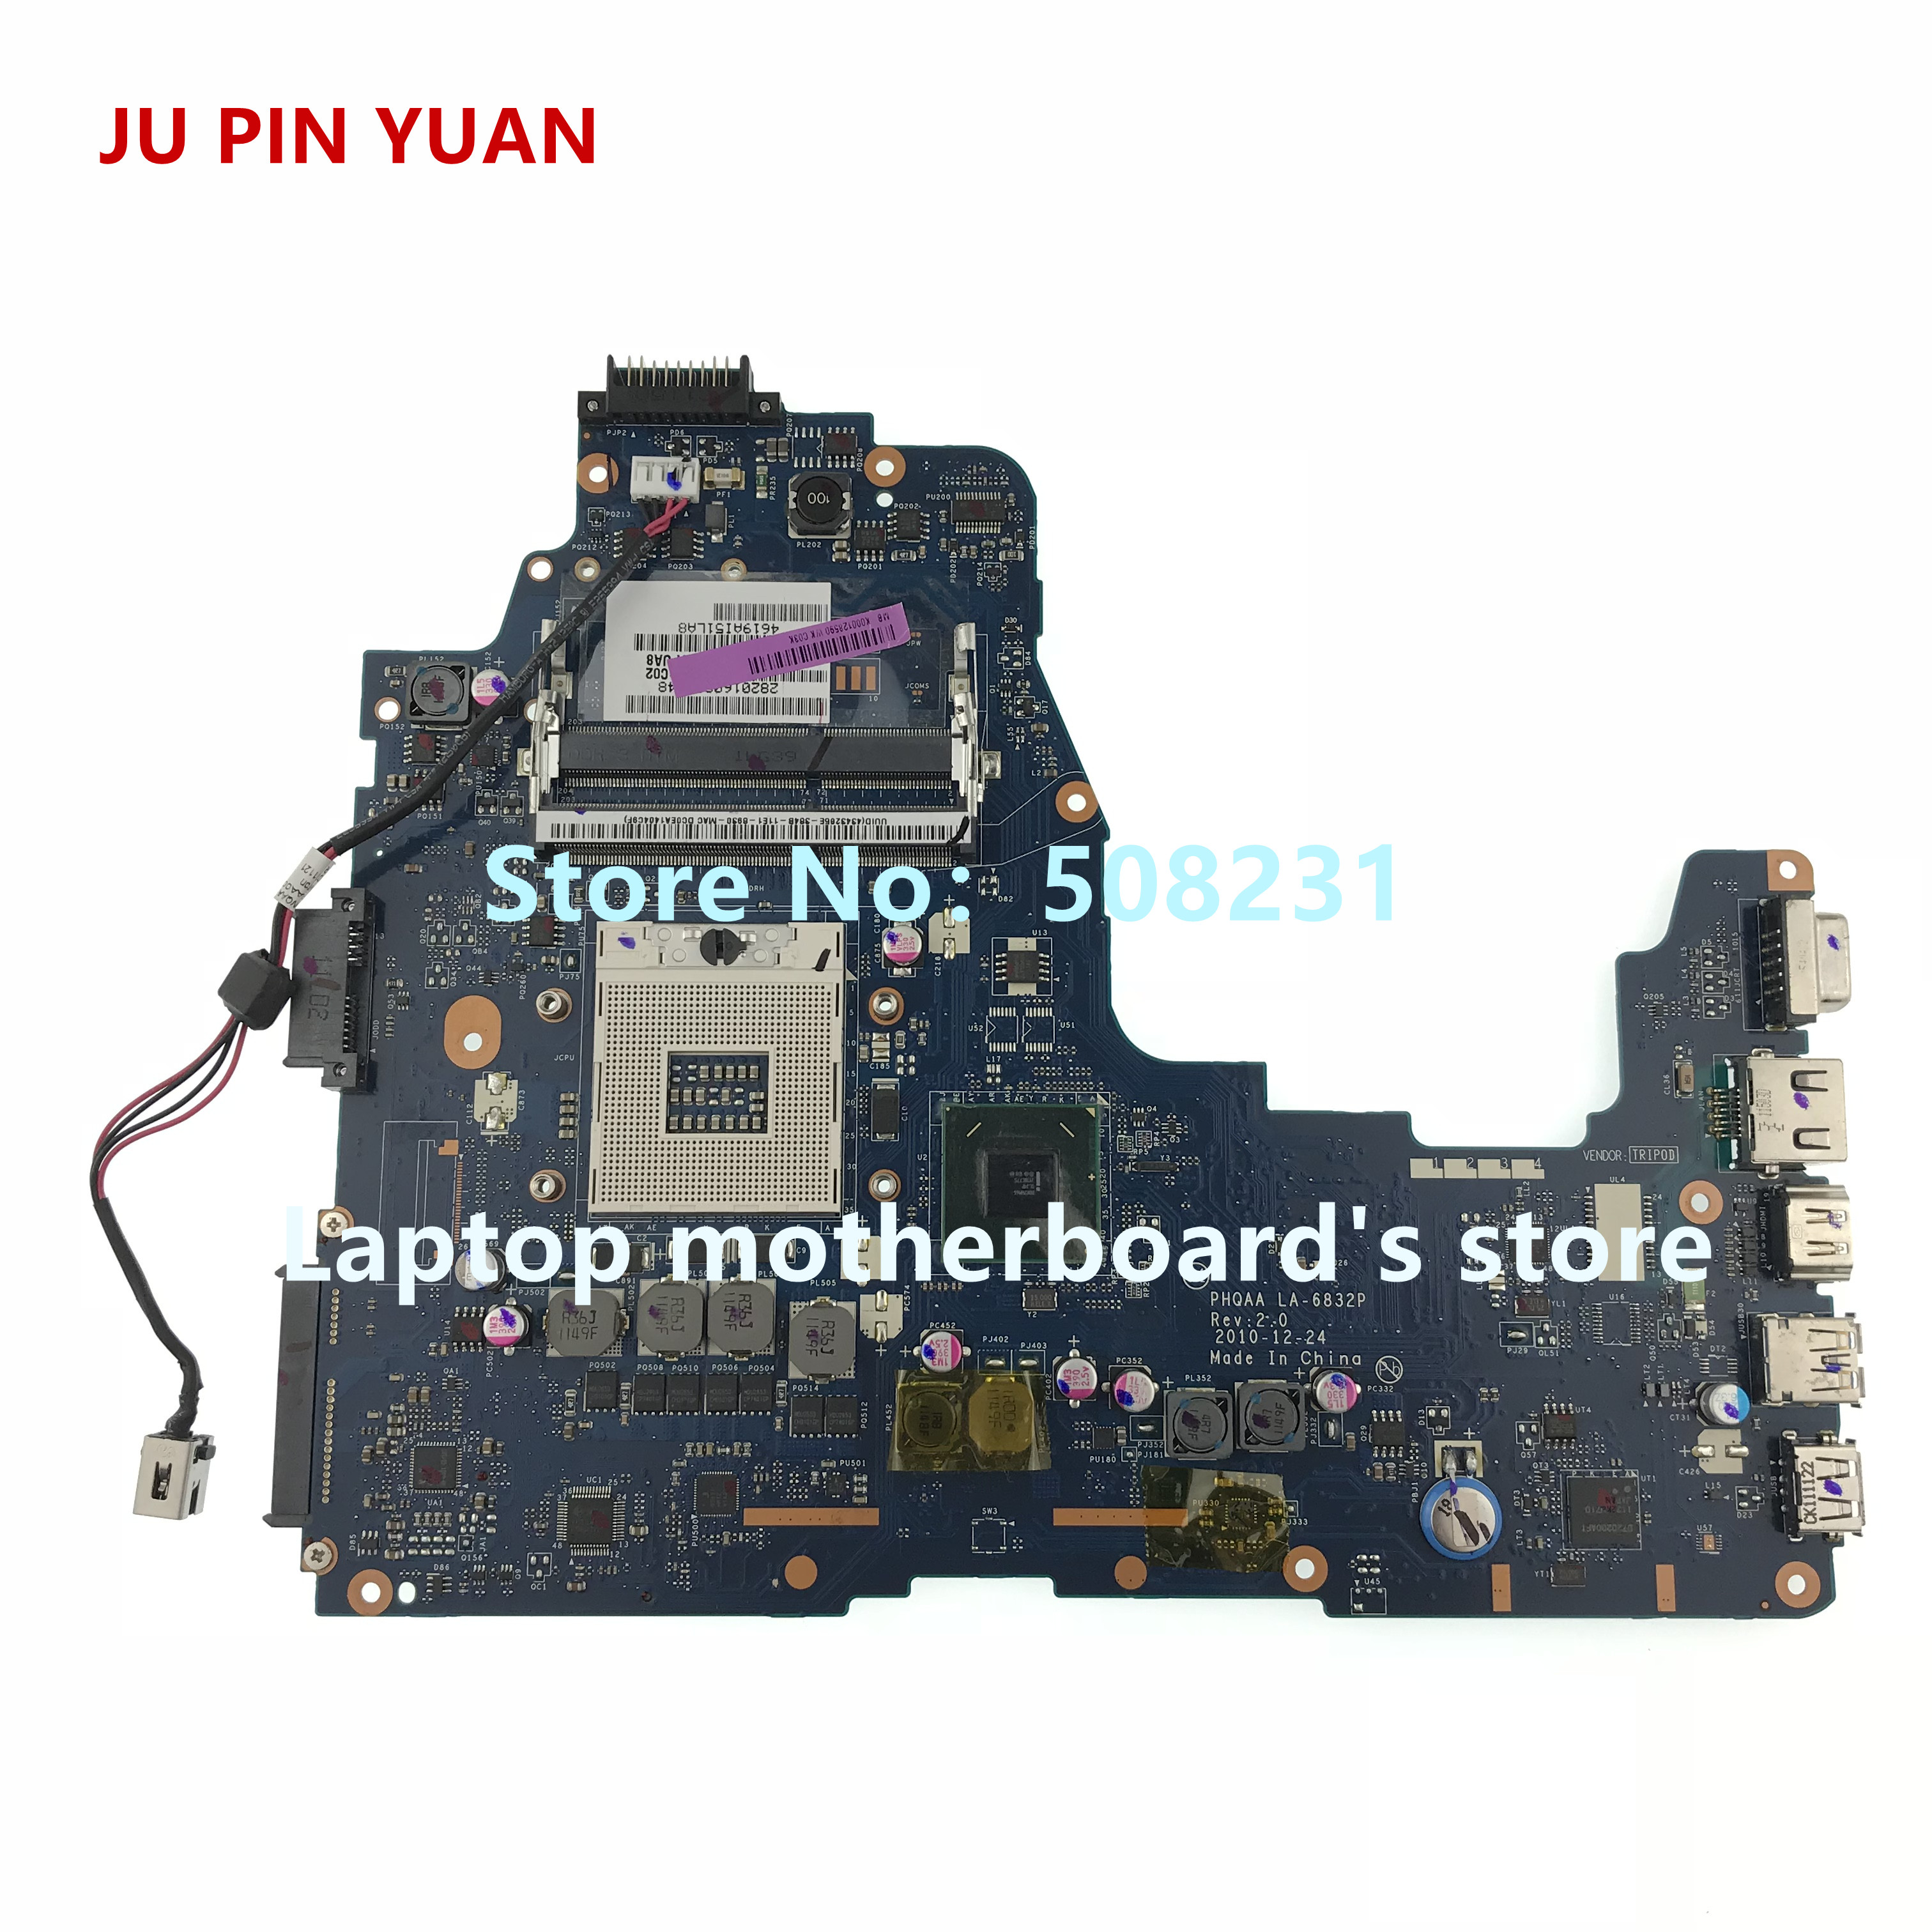 JU PIN YUAN K000128590 LA-6832P Mainrboard For Toshiba satellite P750 P755 A665 A660 laptop motherboard fully Tested JU PIN YUAN K000128590 LA-6832P Mainrboard For Toshiba satellite P750 P755 A665 A660 laptop motherboard fully Tested